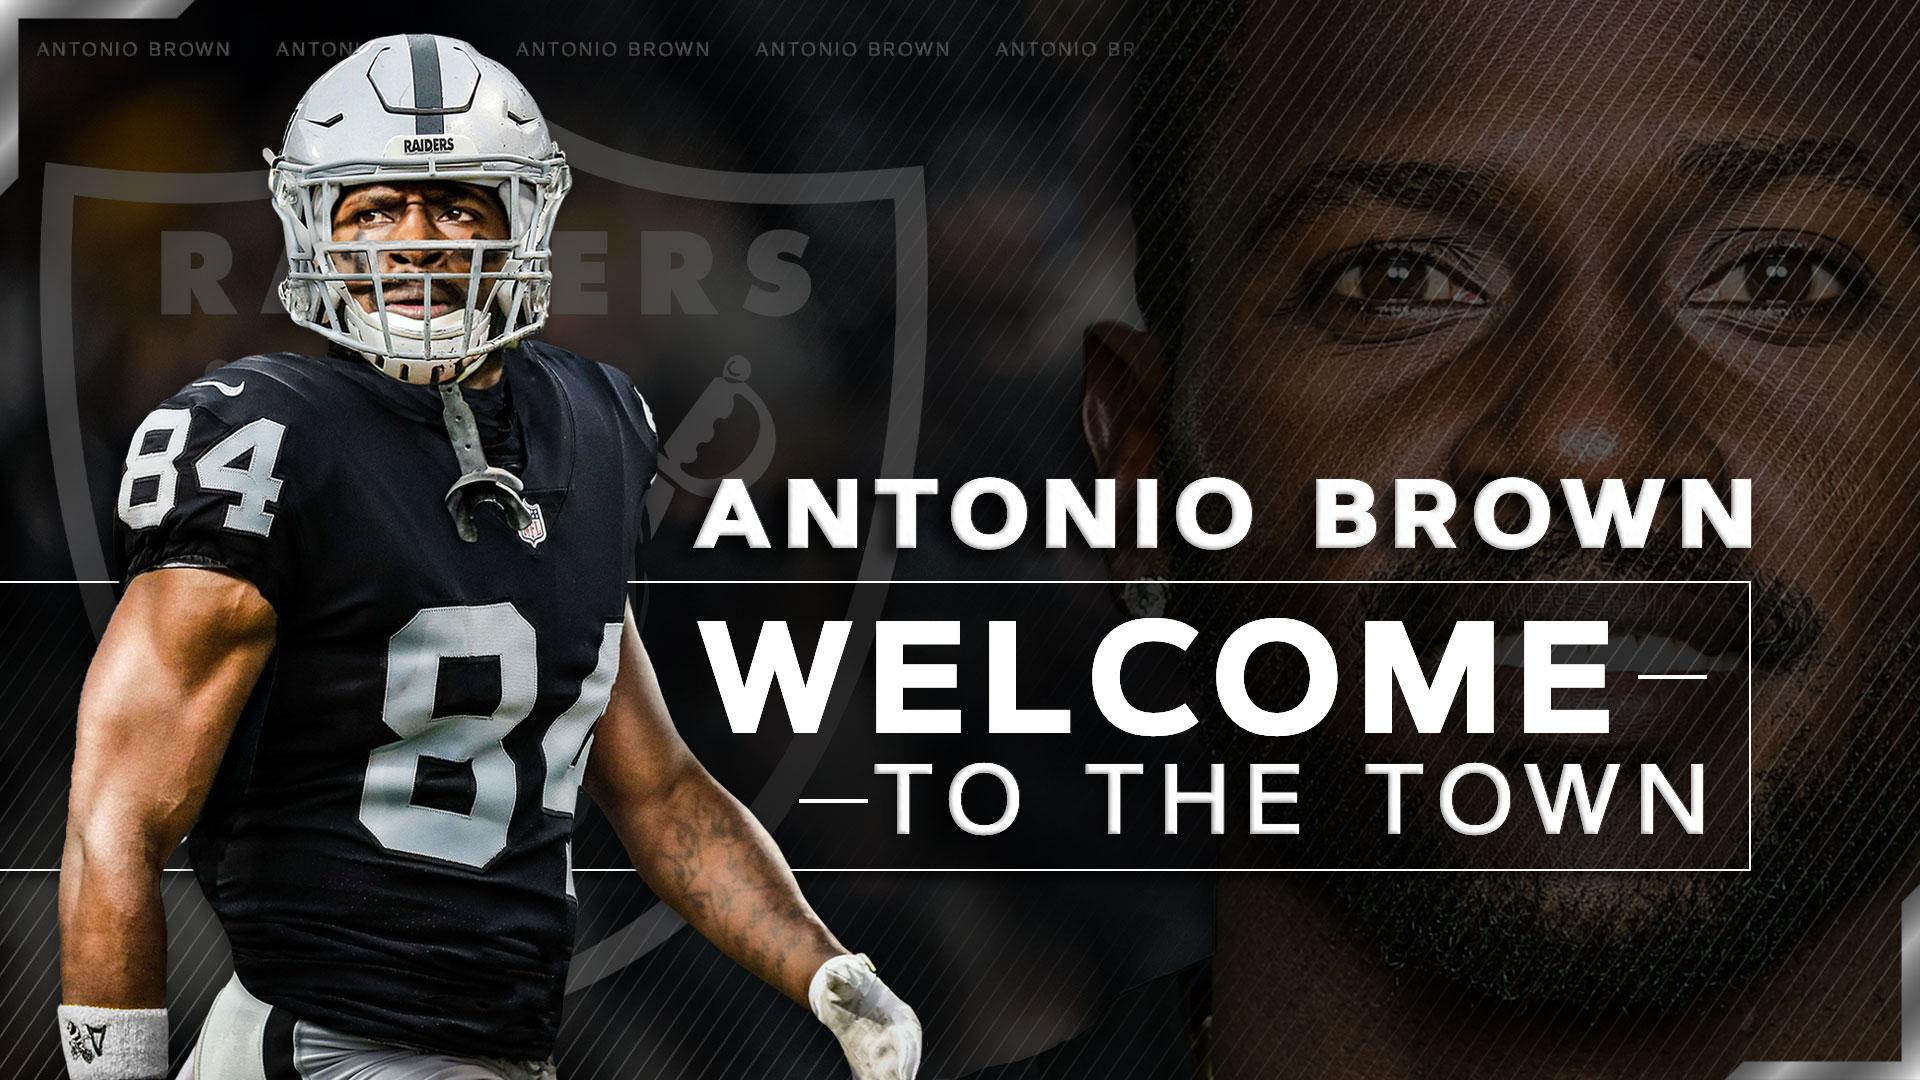 #TownBidness is boomin'.  Welcome to the Silver and Black, @AB84. #RaiderNation https://t.co/UB8Lu1IxPX